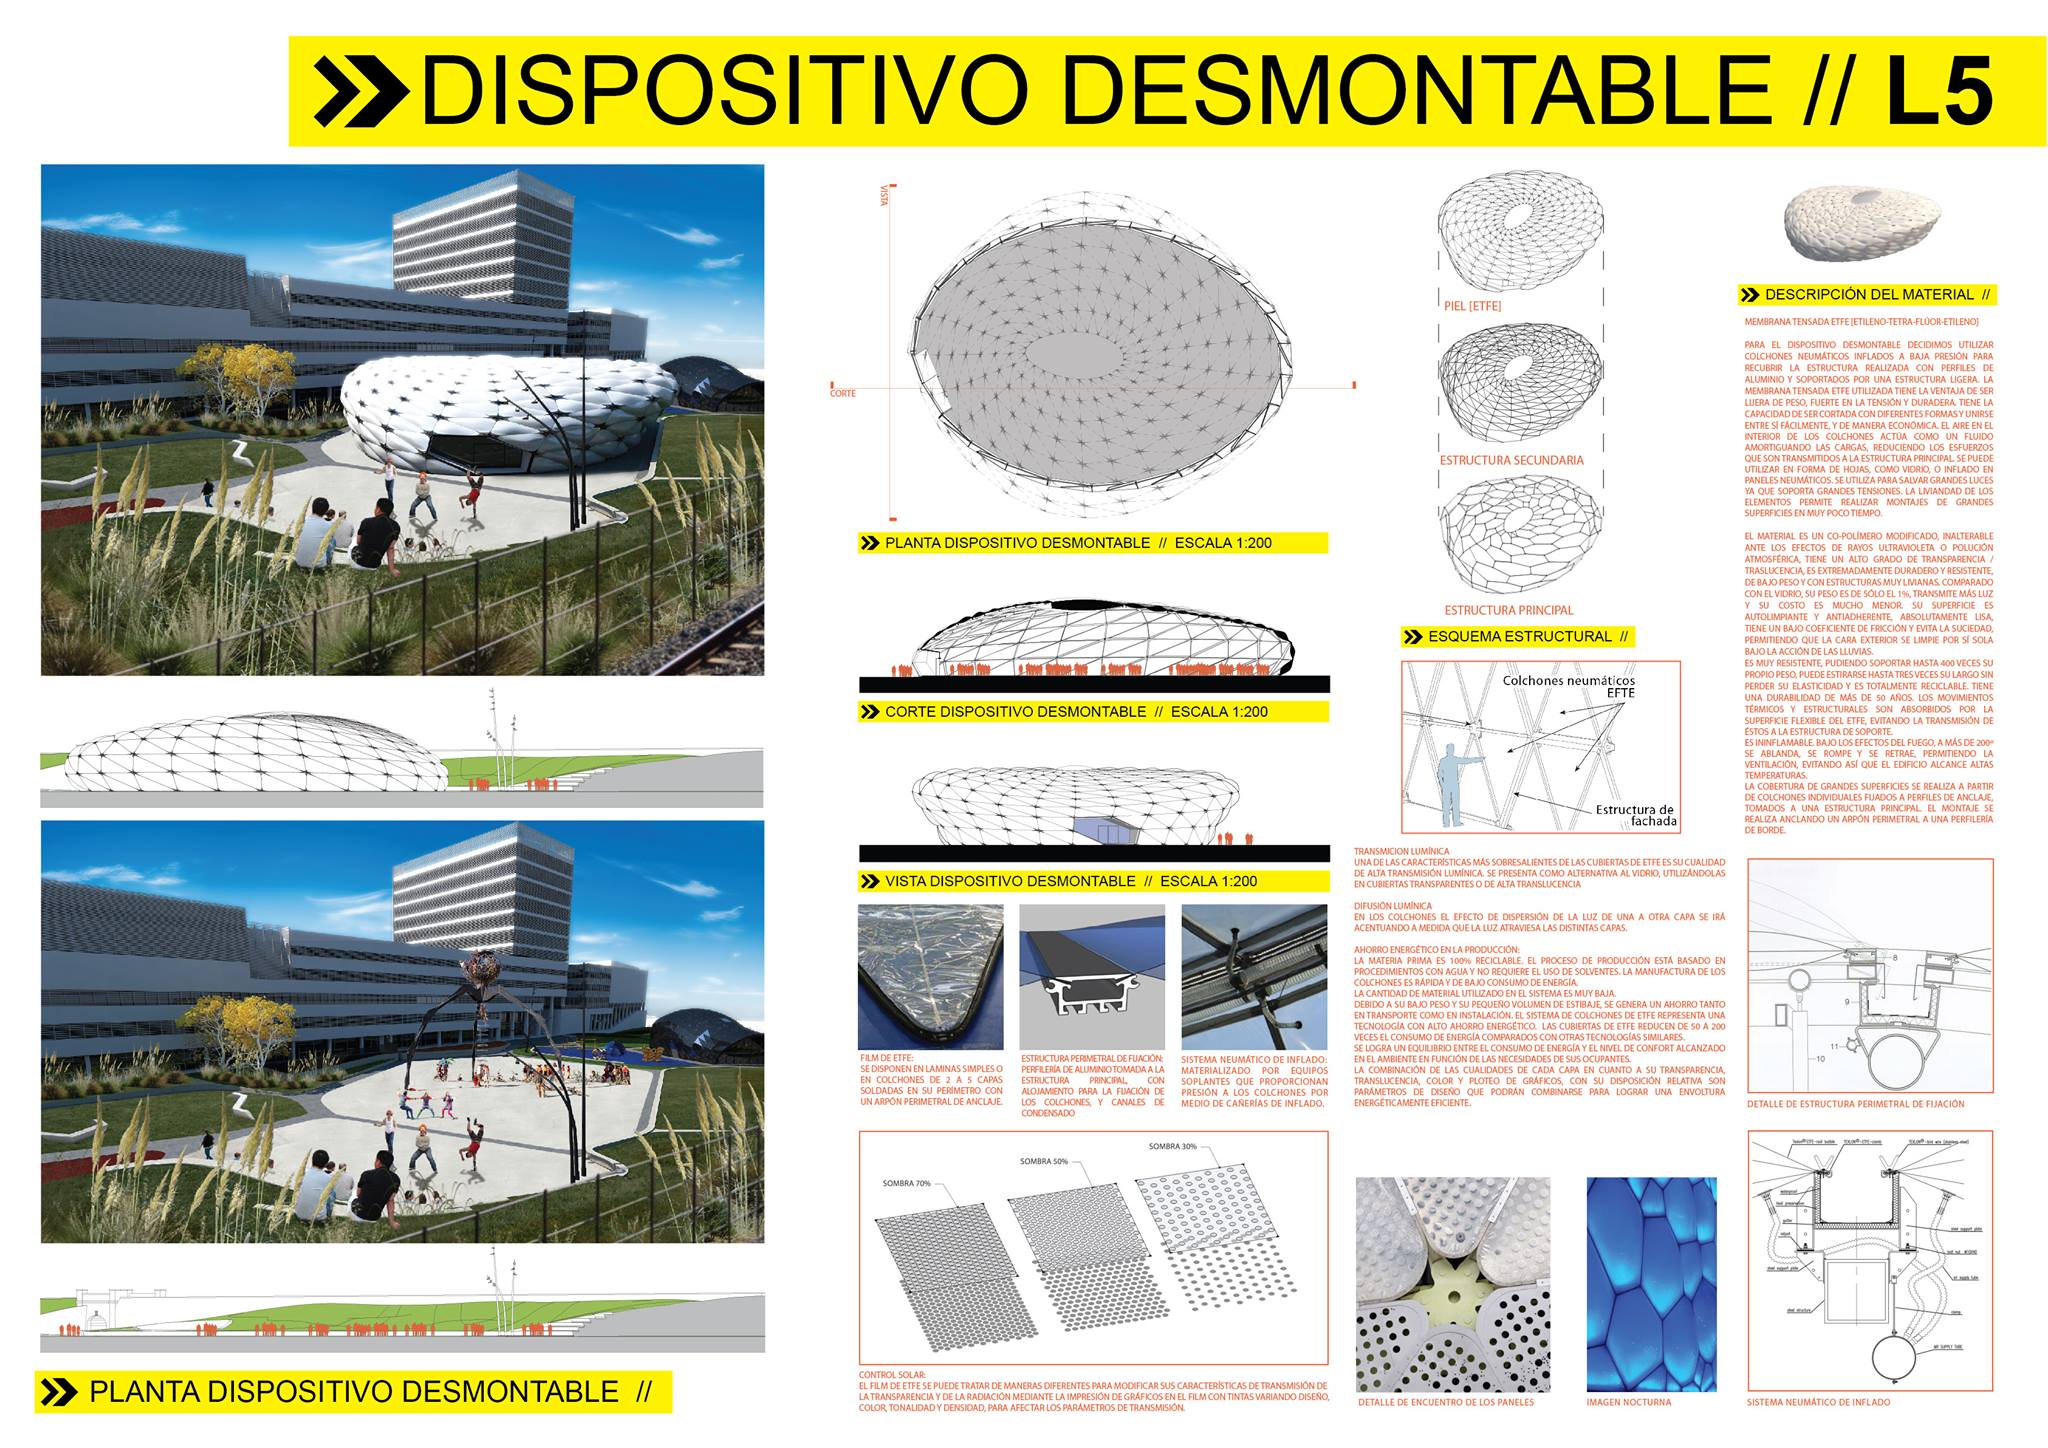 Dispositivo desmontable